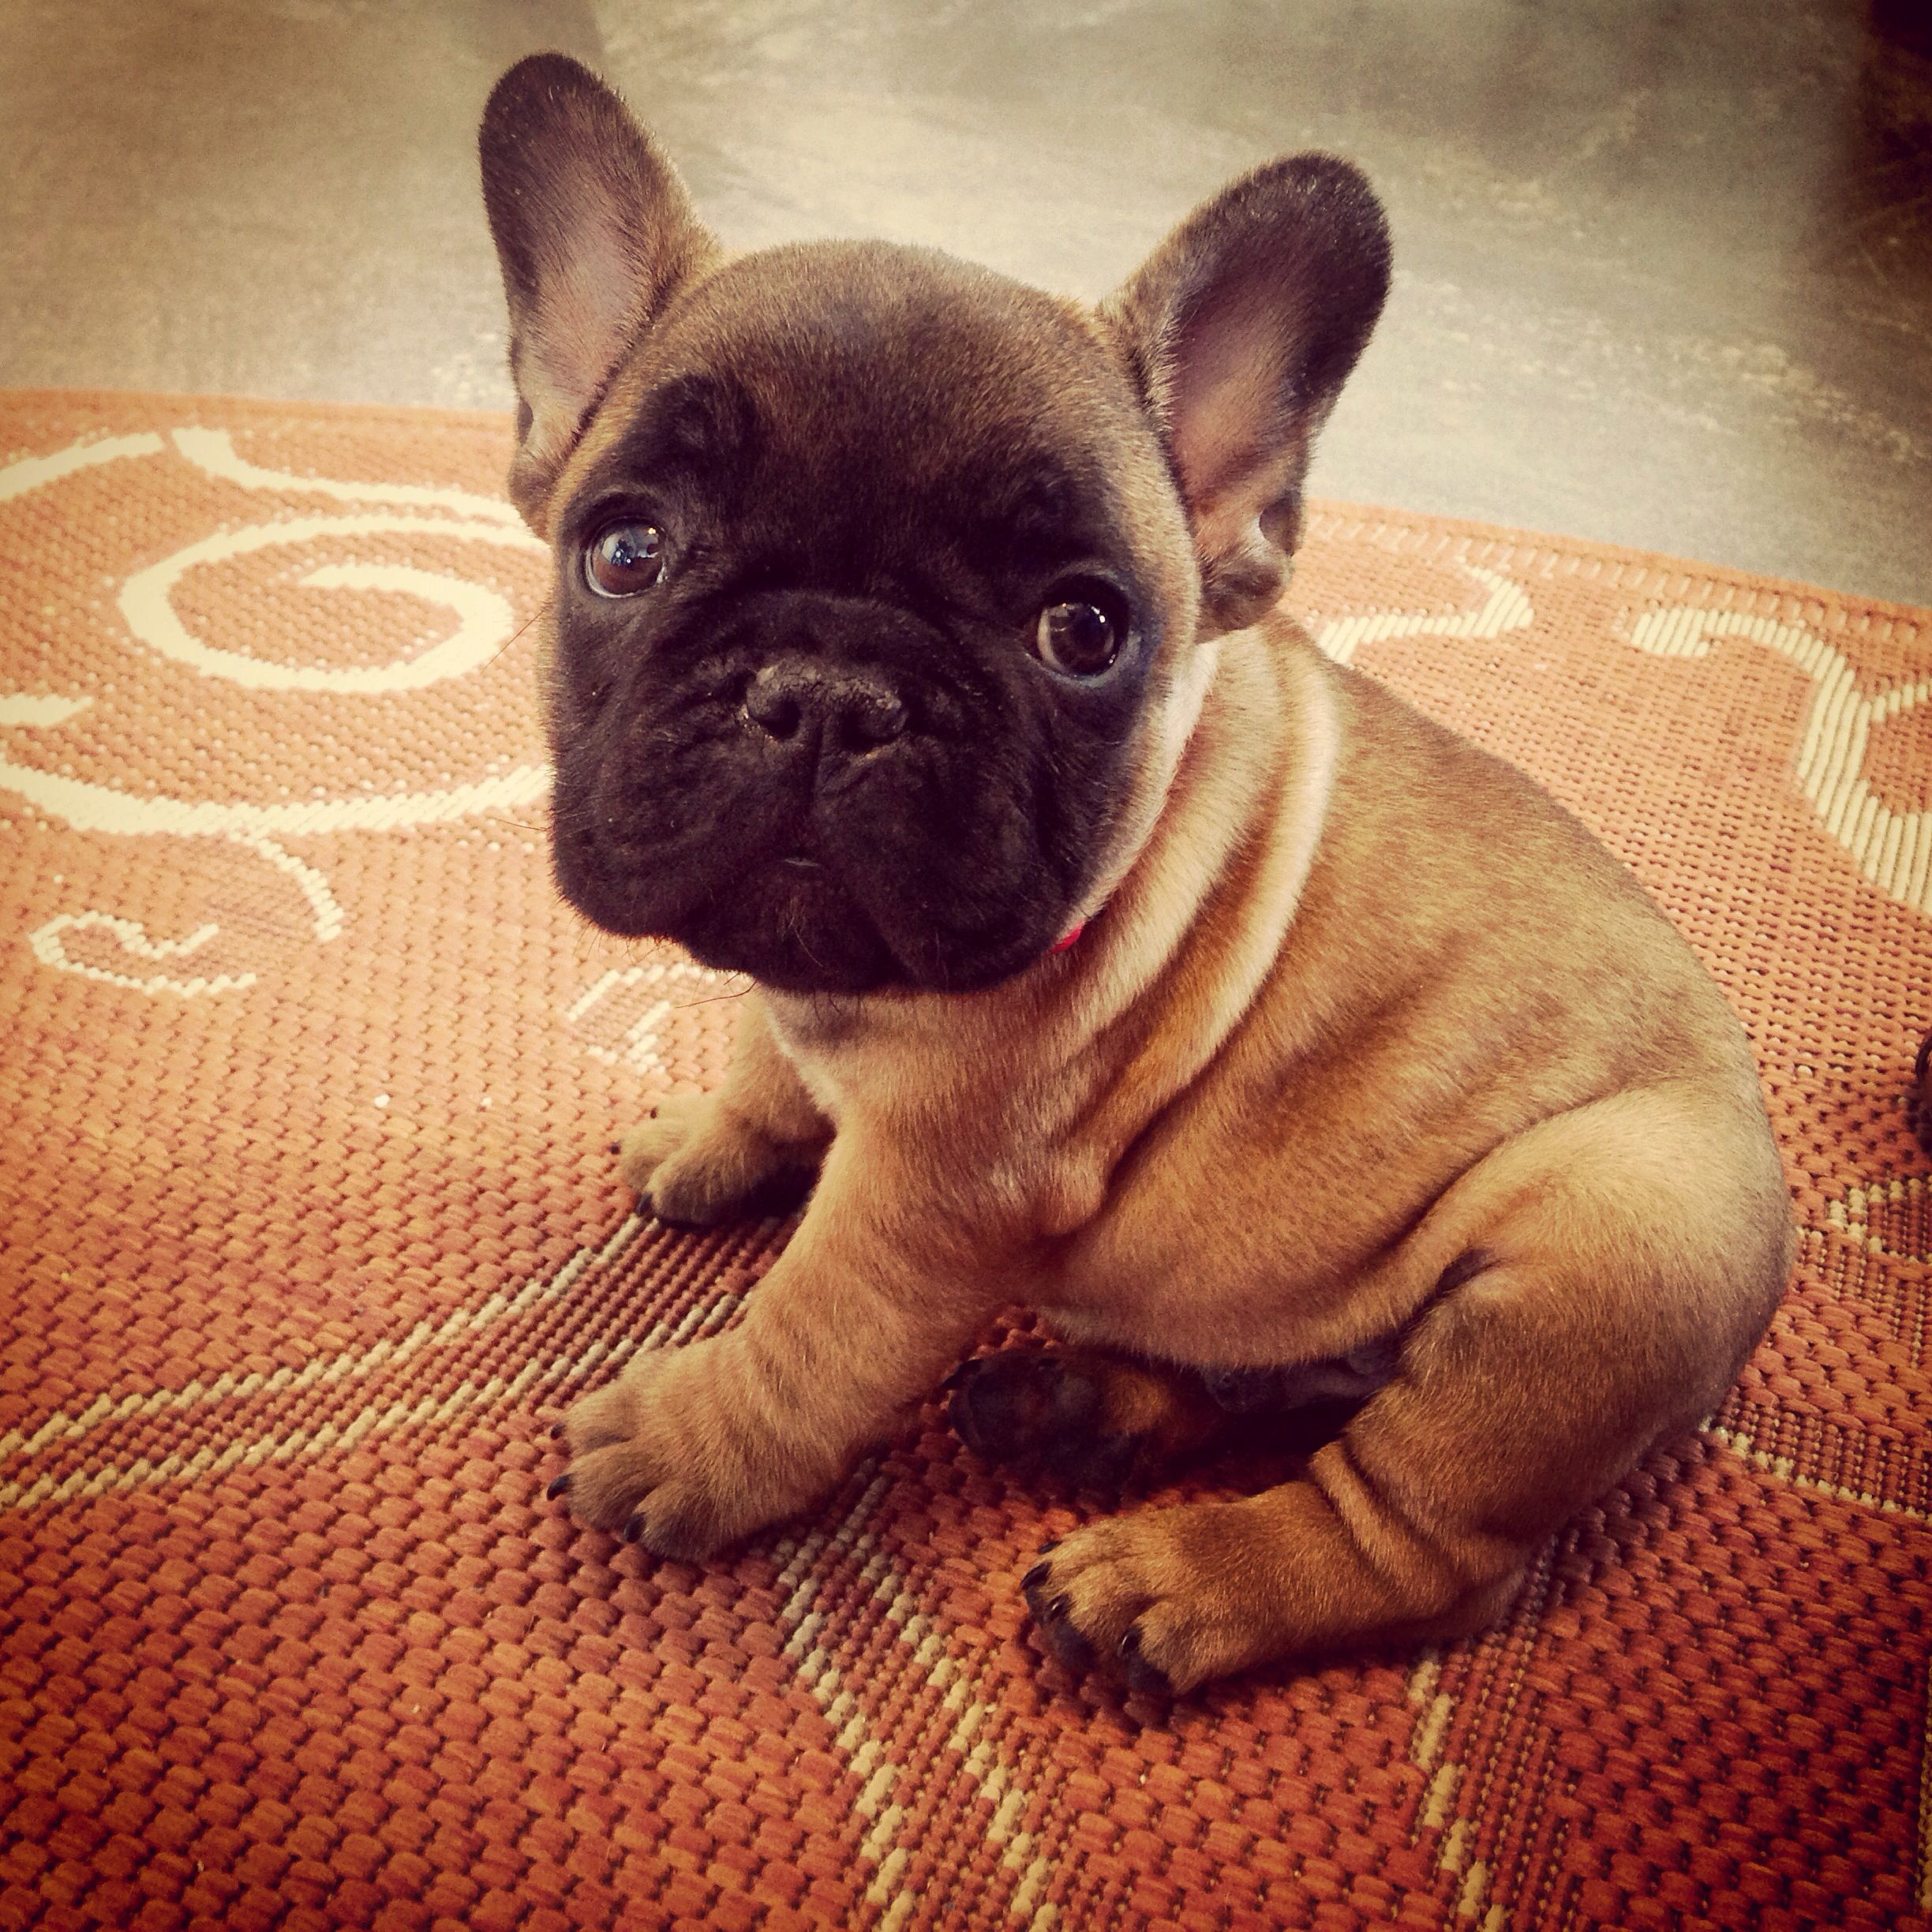 Snuggly French Bulldog Puppy At 8 Weeks Old Ig Rufusthefrenchy Rufustbarleysheath Frenchbulldog Frenchie French Bulldog Puppies Bulldog Puppies Bulldog